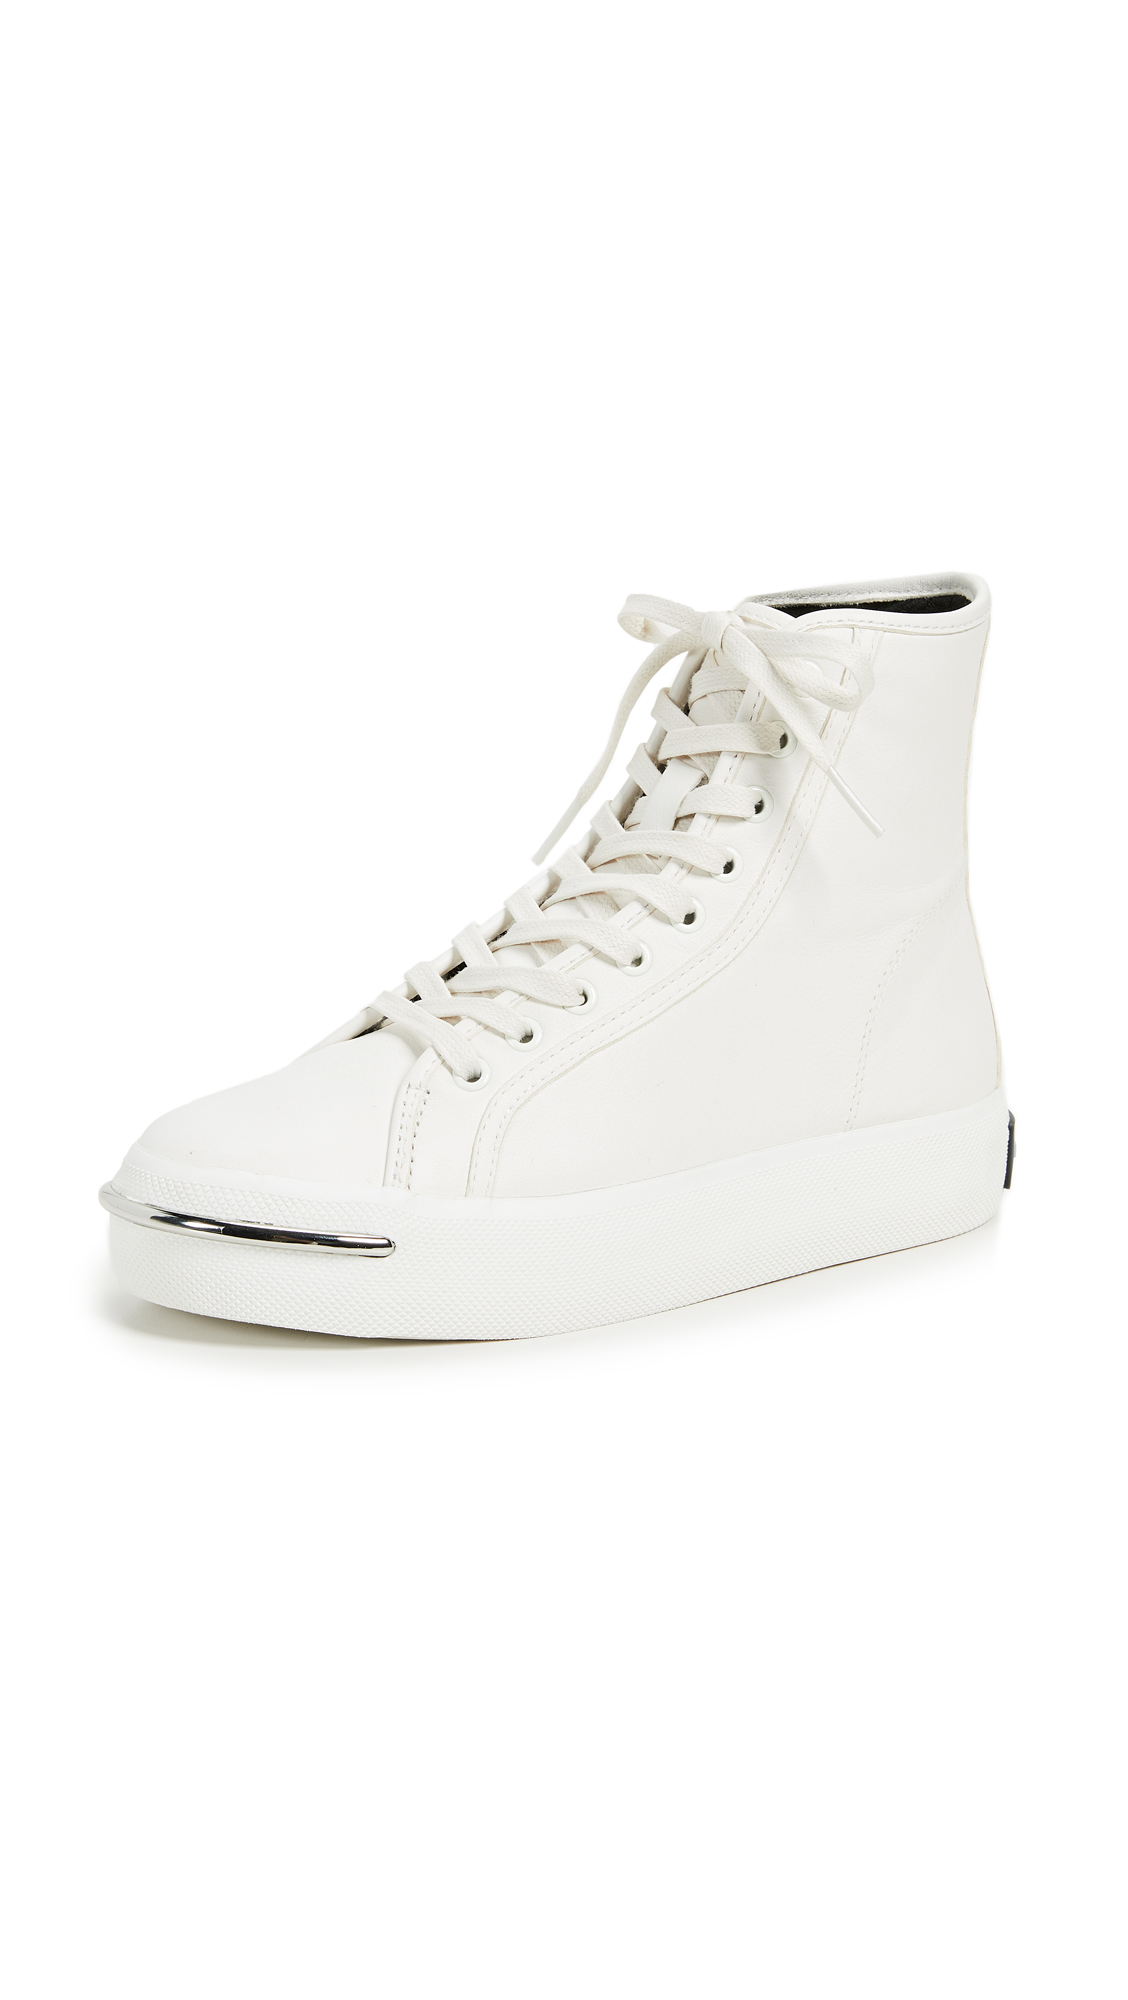 Pia Leather Sneakers - White Size 9.5